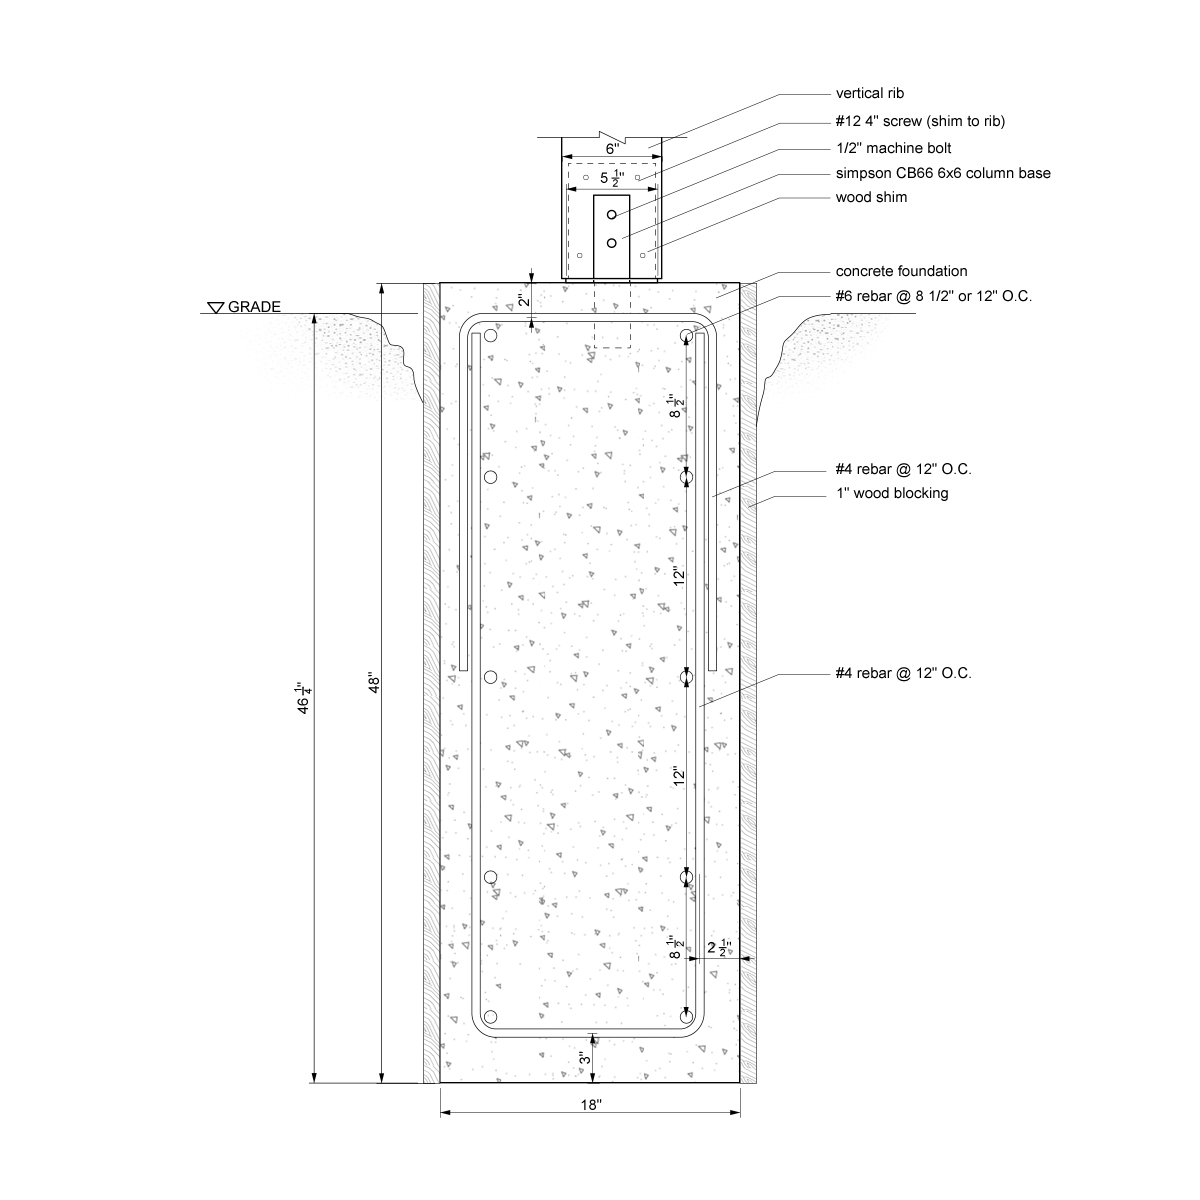 0927section [Converted]-01.jpg